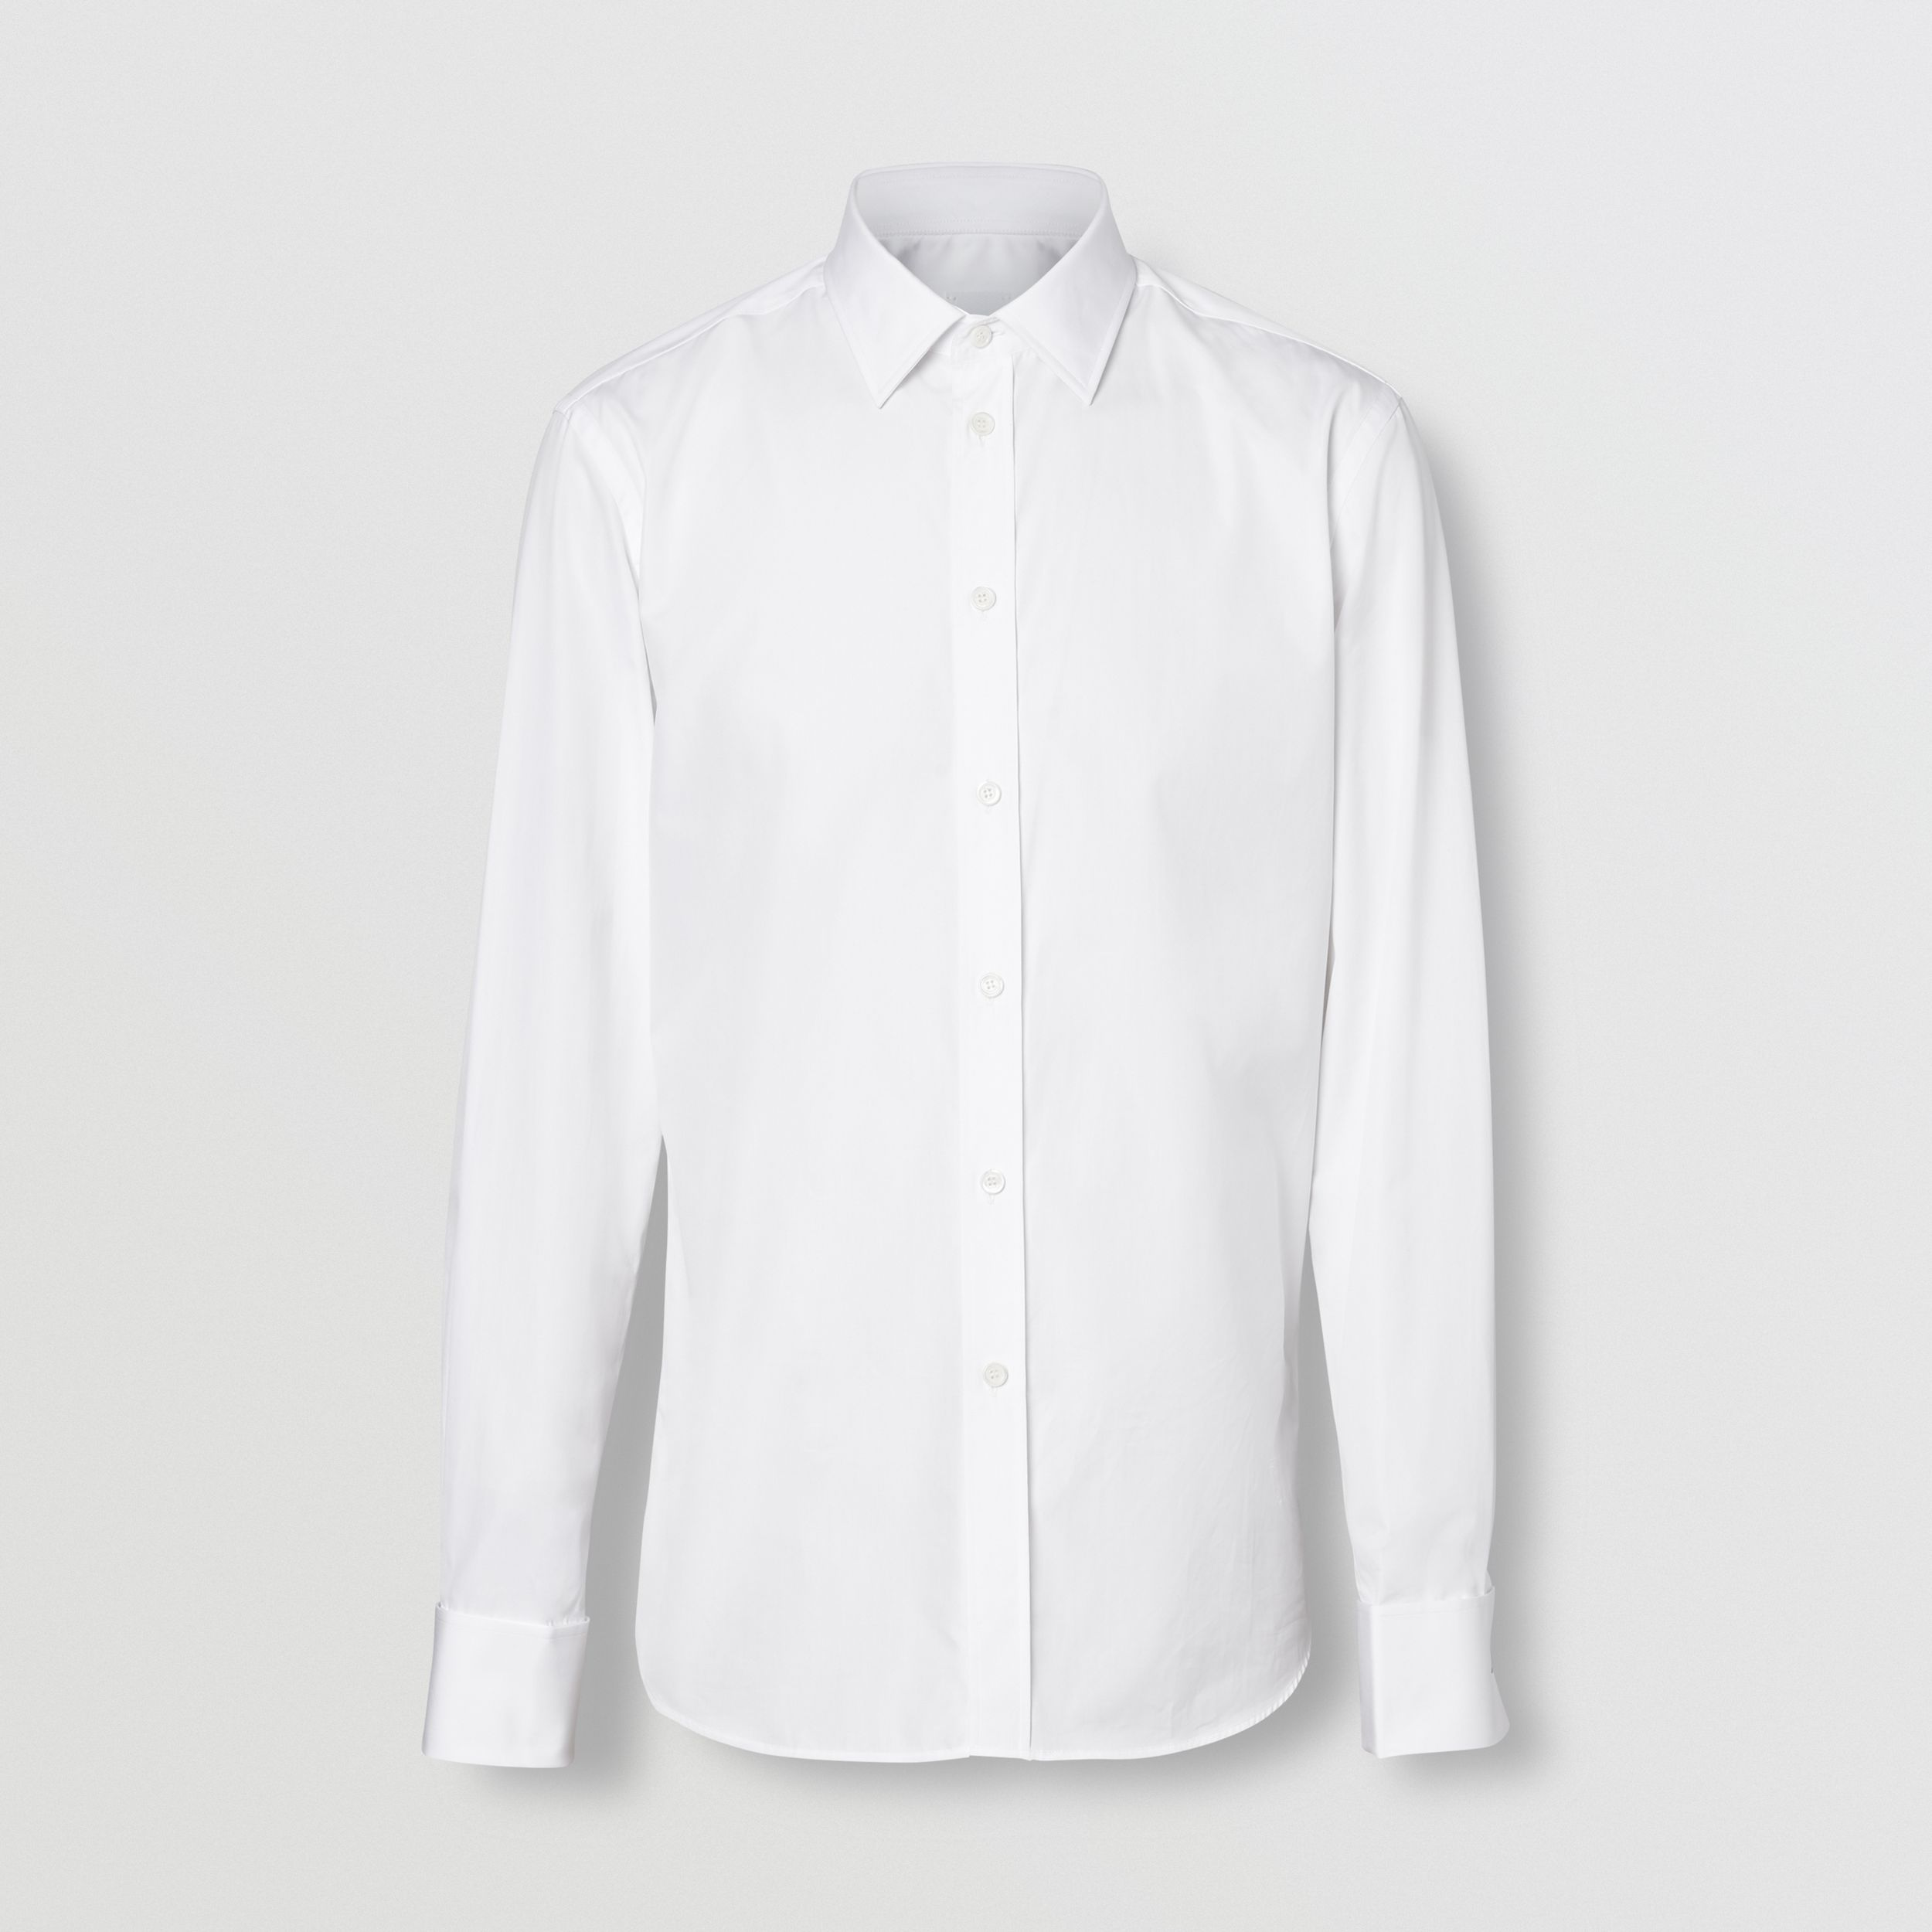 Slim Fit Monogram Motif Cotton Poplin Shirt in White - Men | Burberry - 4